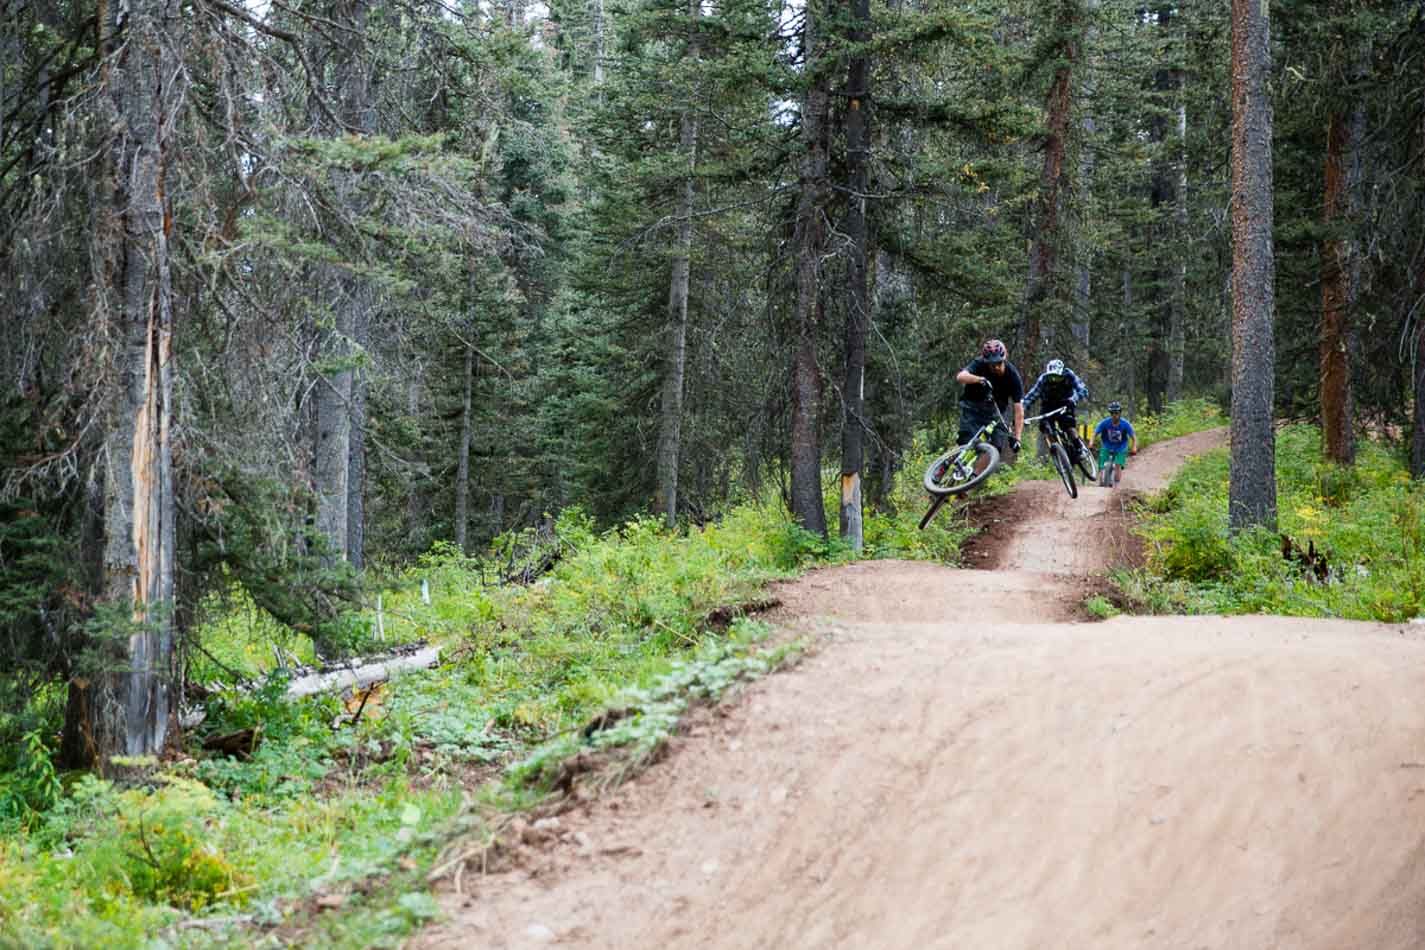 Logan James and Dennis Martin shredding one of the jump lines.